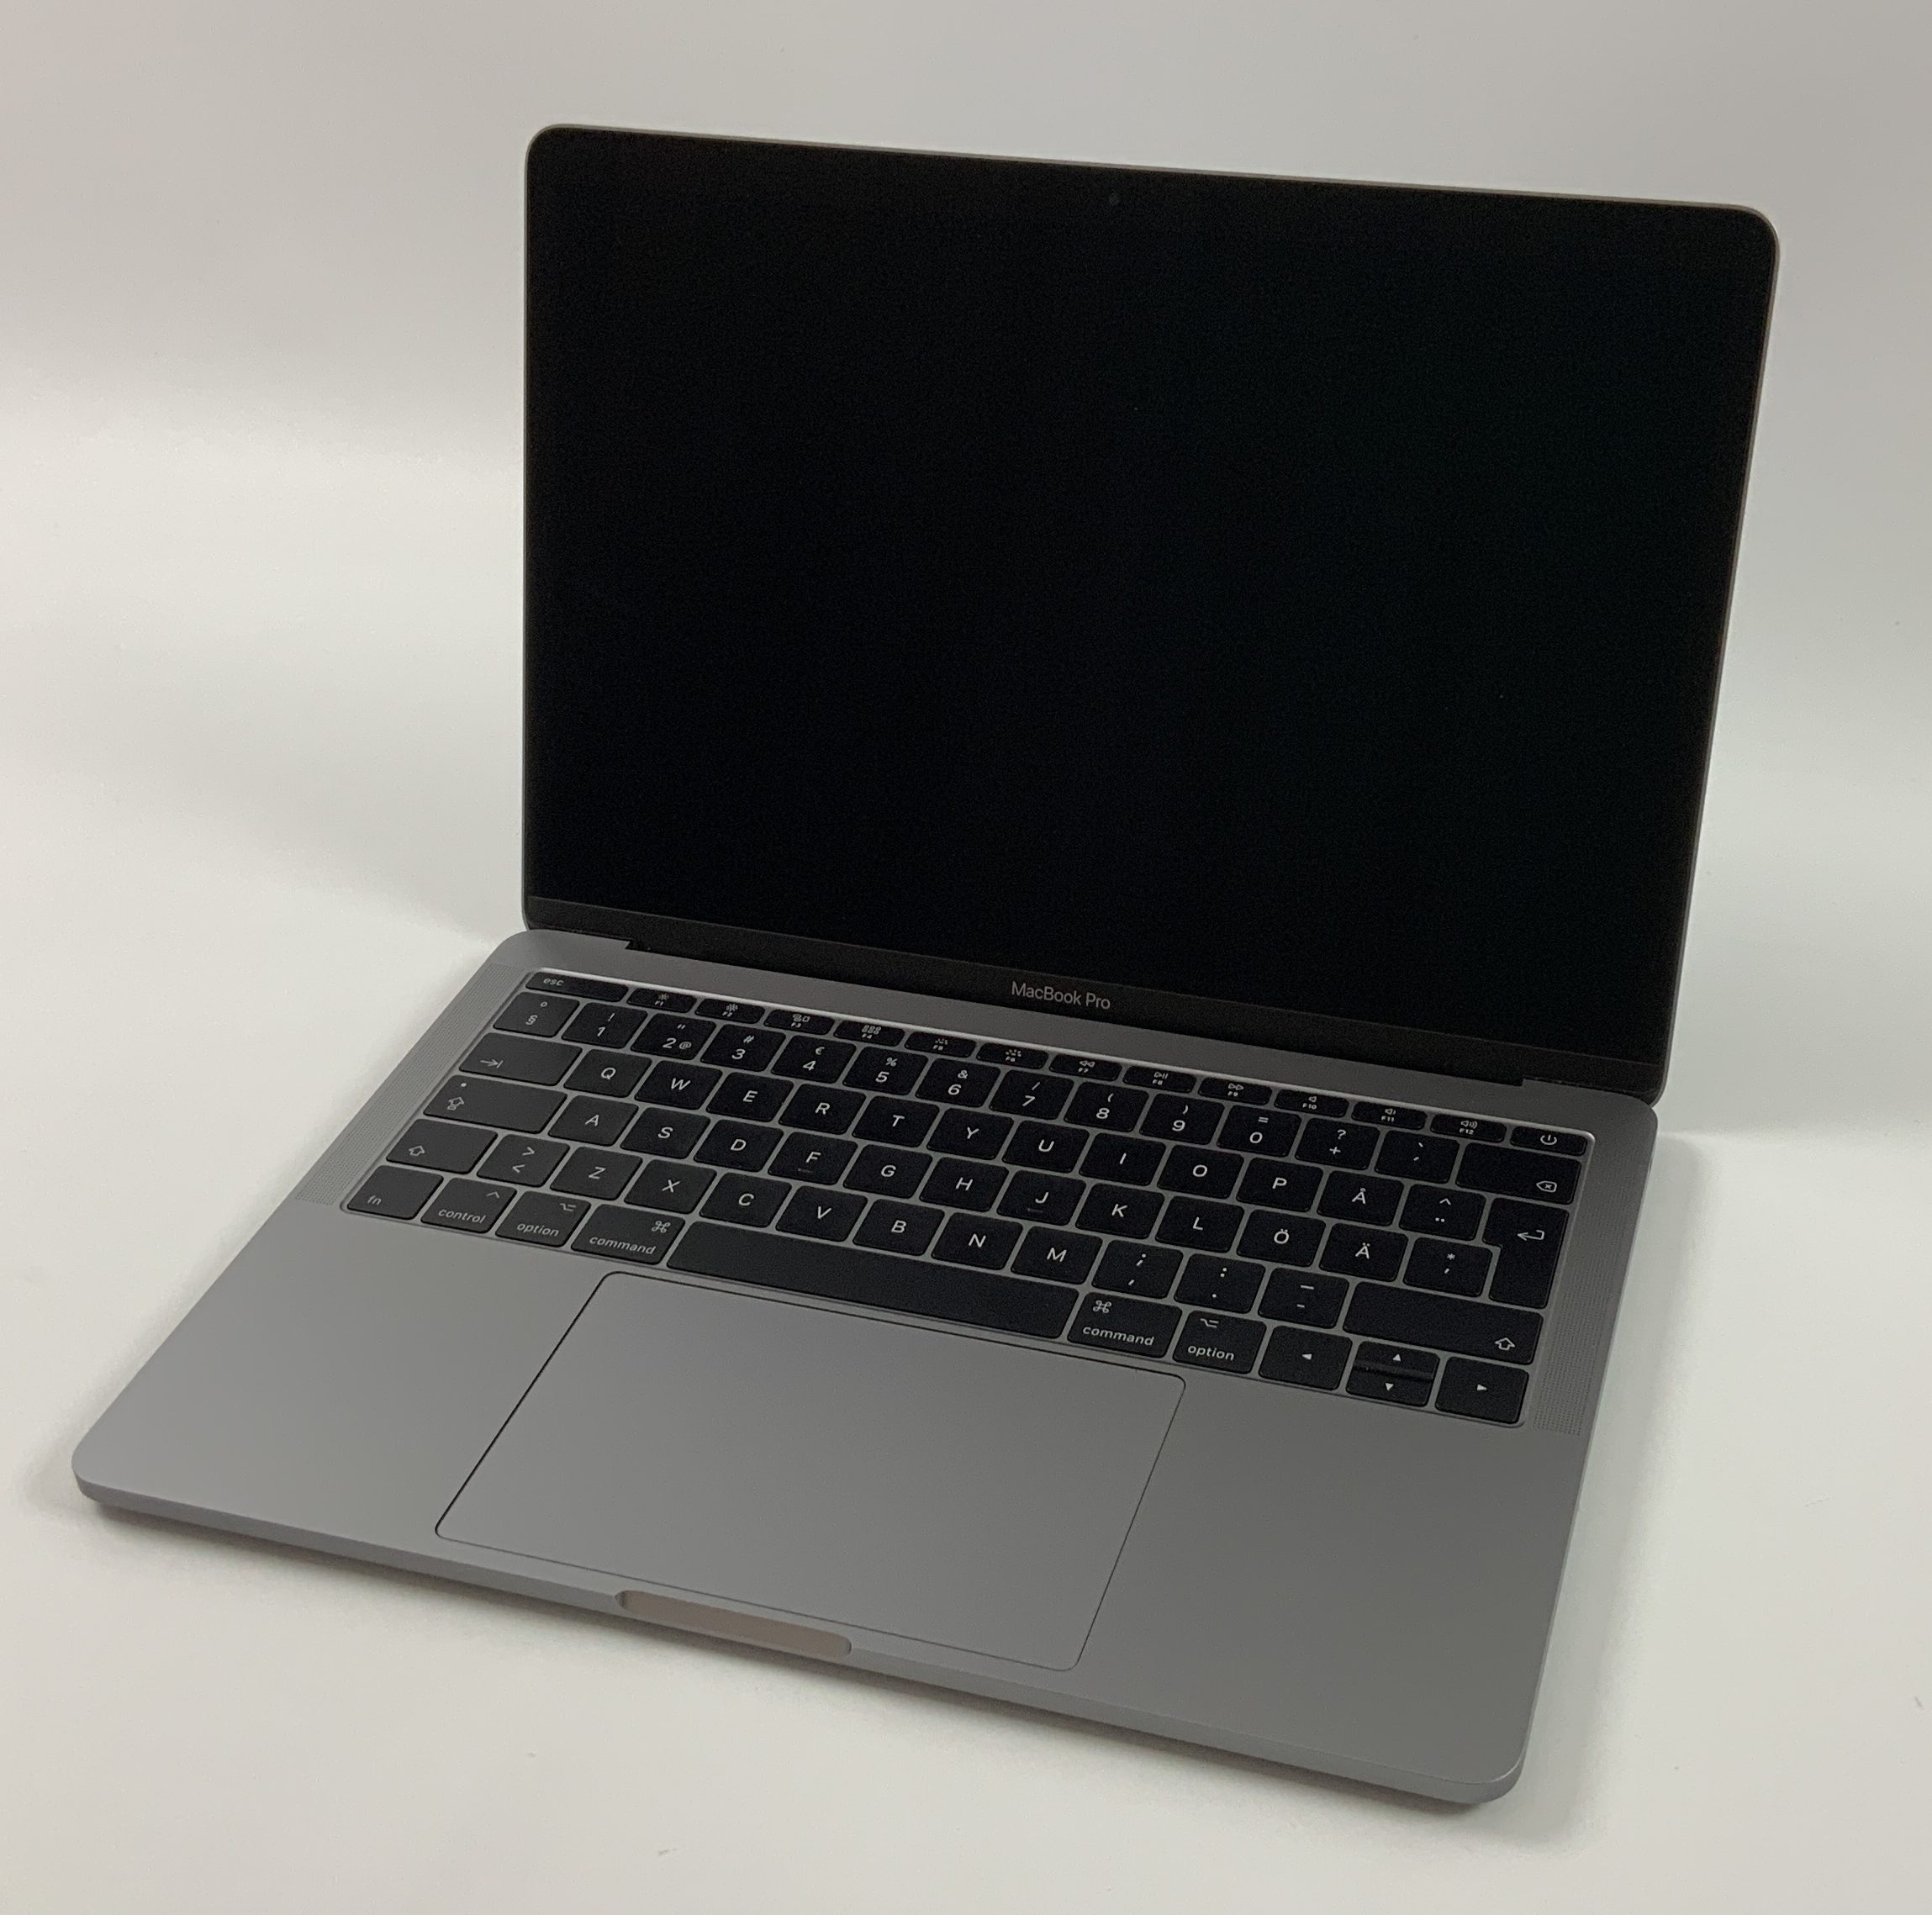 "MacBook Pro 13"" 2TBT Mid 2017 (Intel Core i5 2.3 GHz 8 GB RAM 256 GB SSD), Space Gray, Intel Core i5 2.3 GHz, 8 GB RAM, 256 GB SSD, imagen 1"